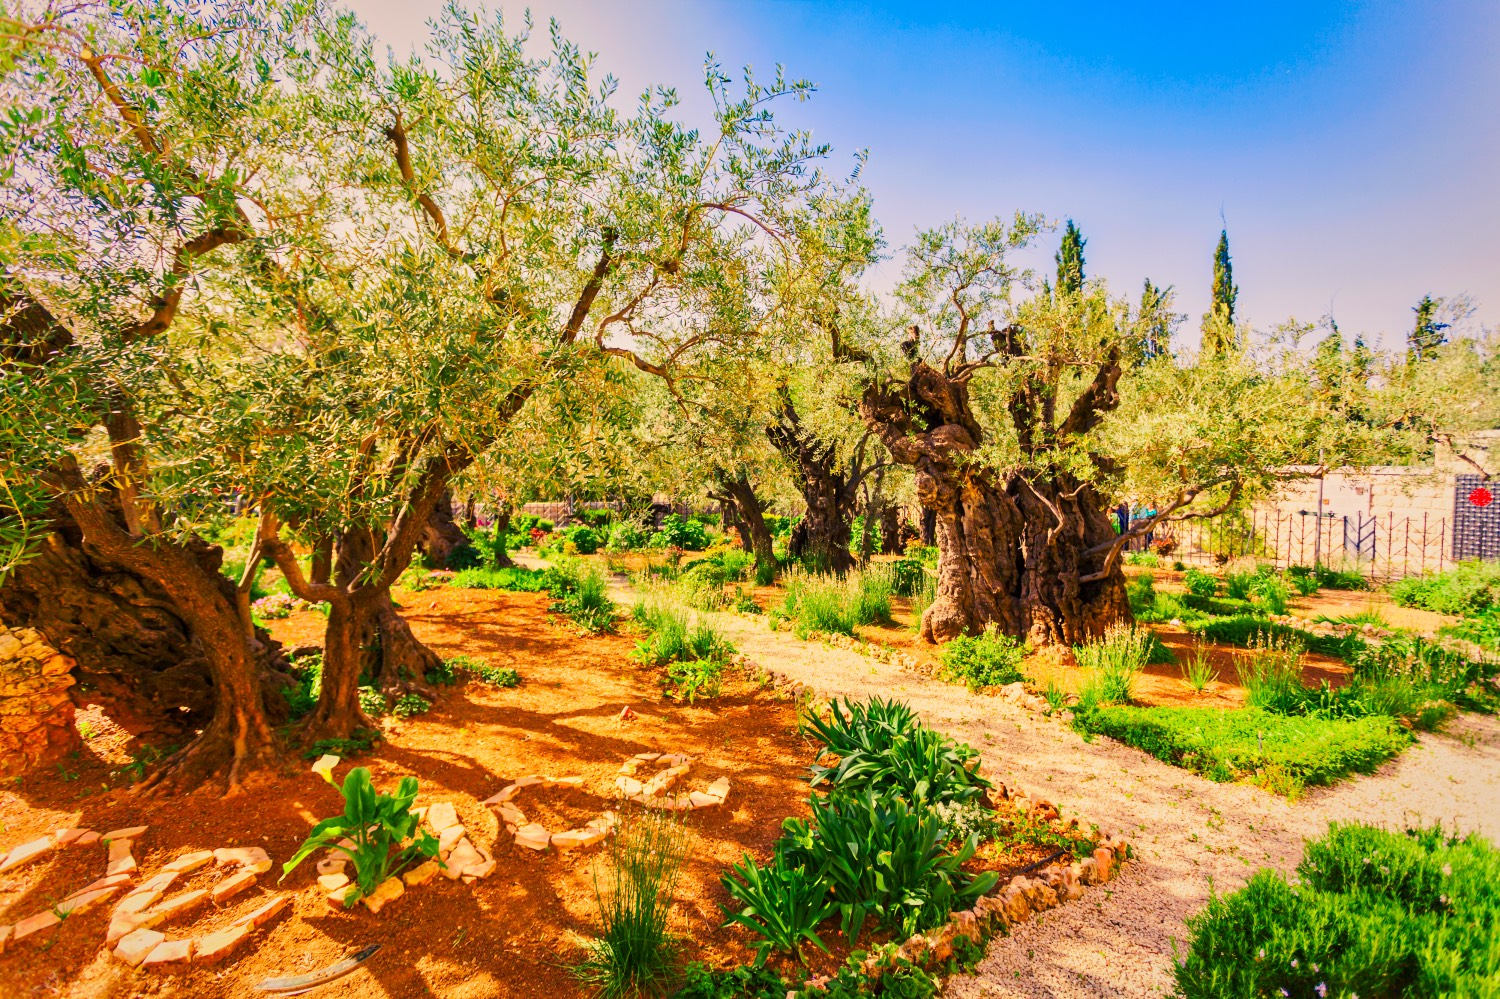 016 jesus takes our sin in gethsemane new podcast for Age olive trees garden gethsemane